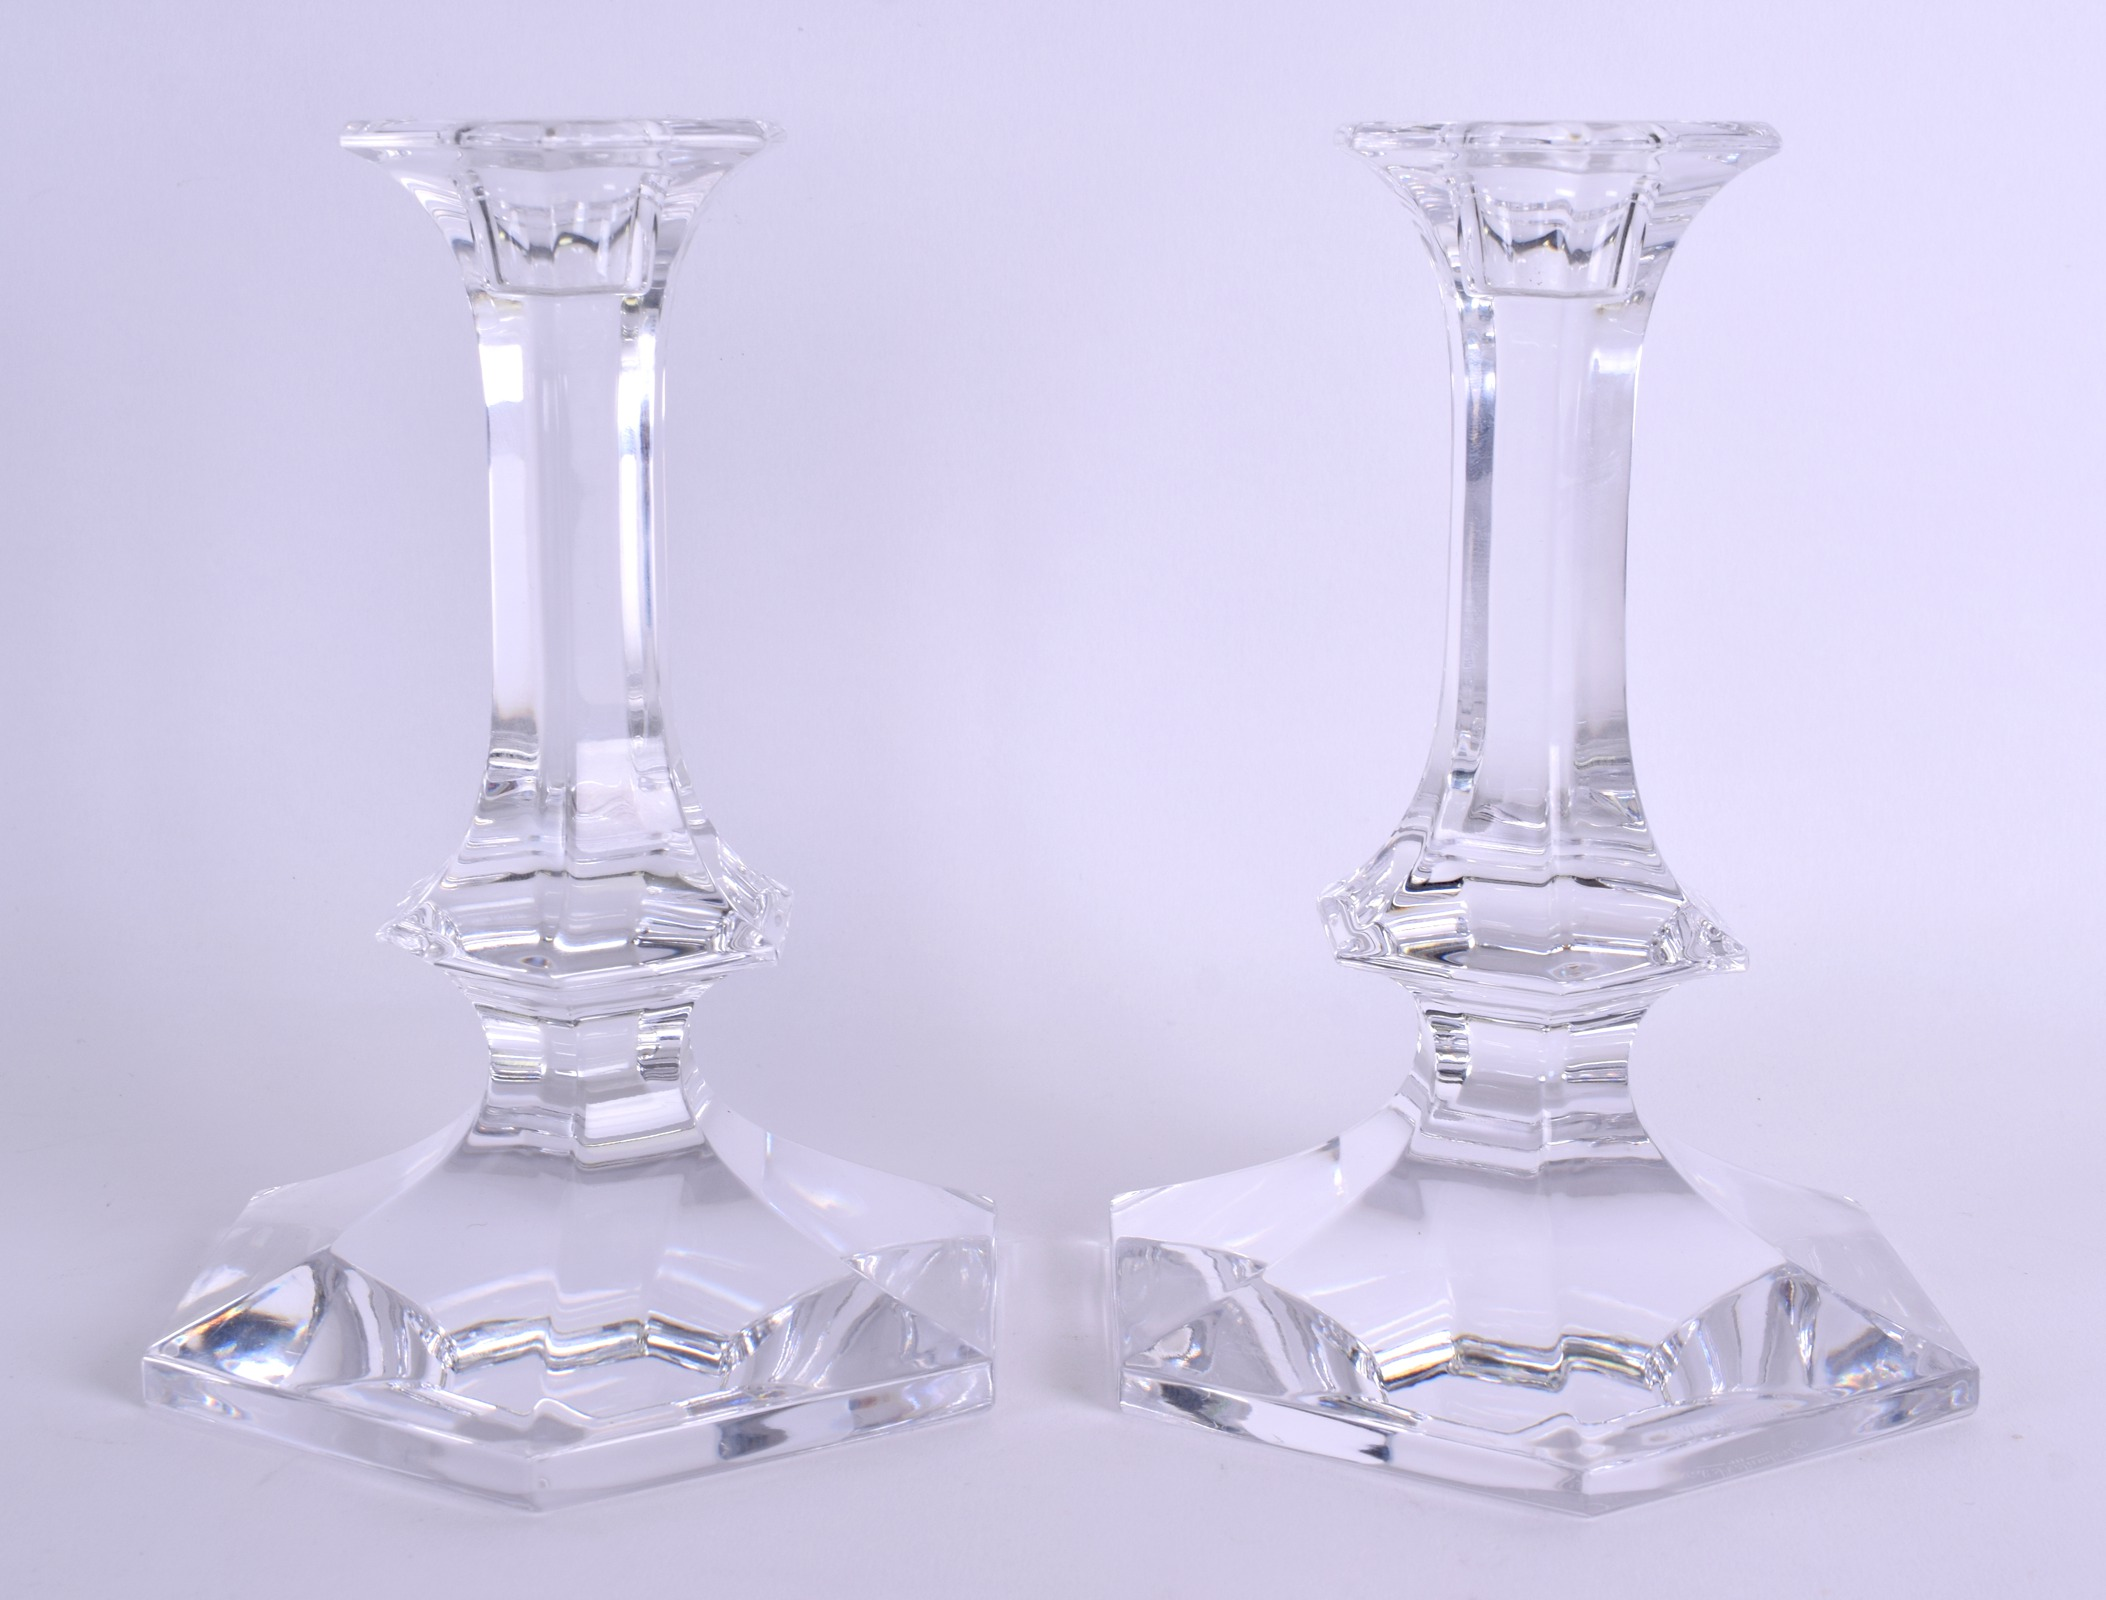 Lot 19 - A PAIR OF FRENCH VAL ST LAMBERT CRYSTAL GLASS CANDLESTICKS. 18 cm high.